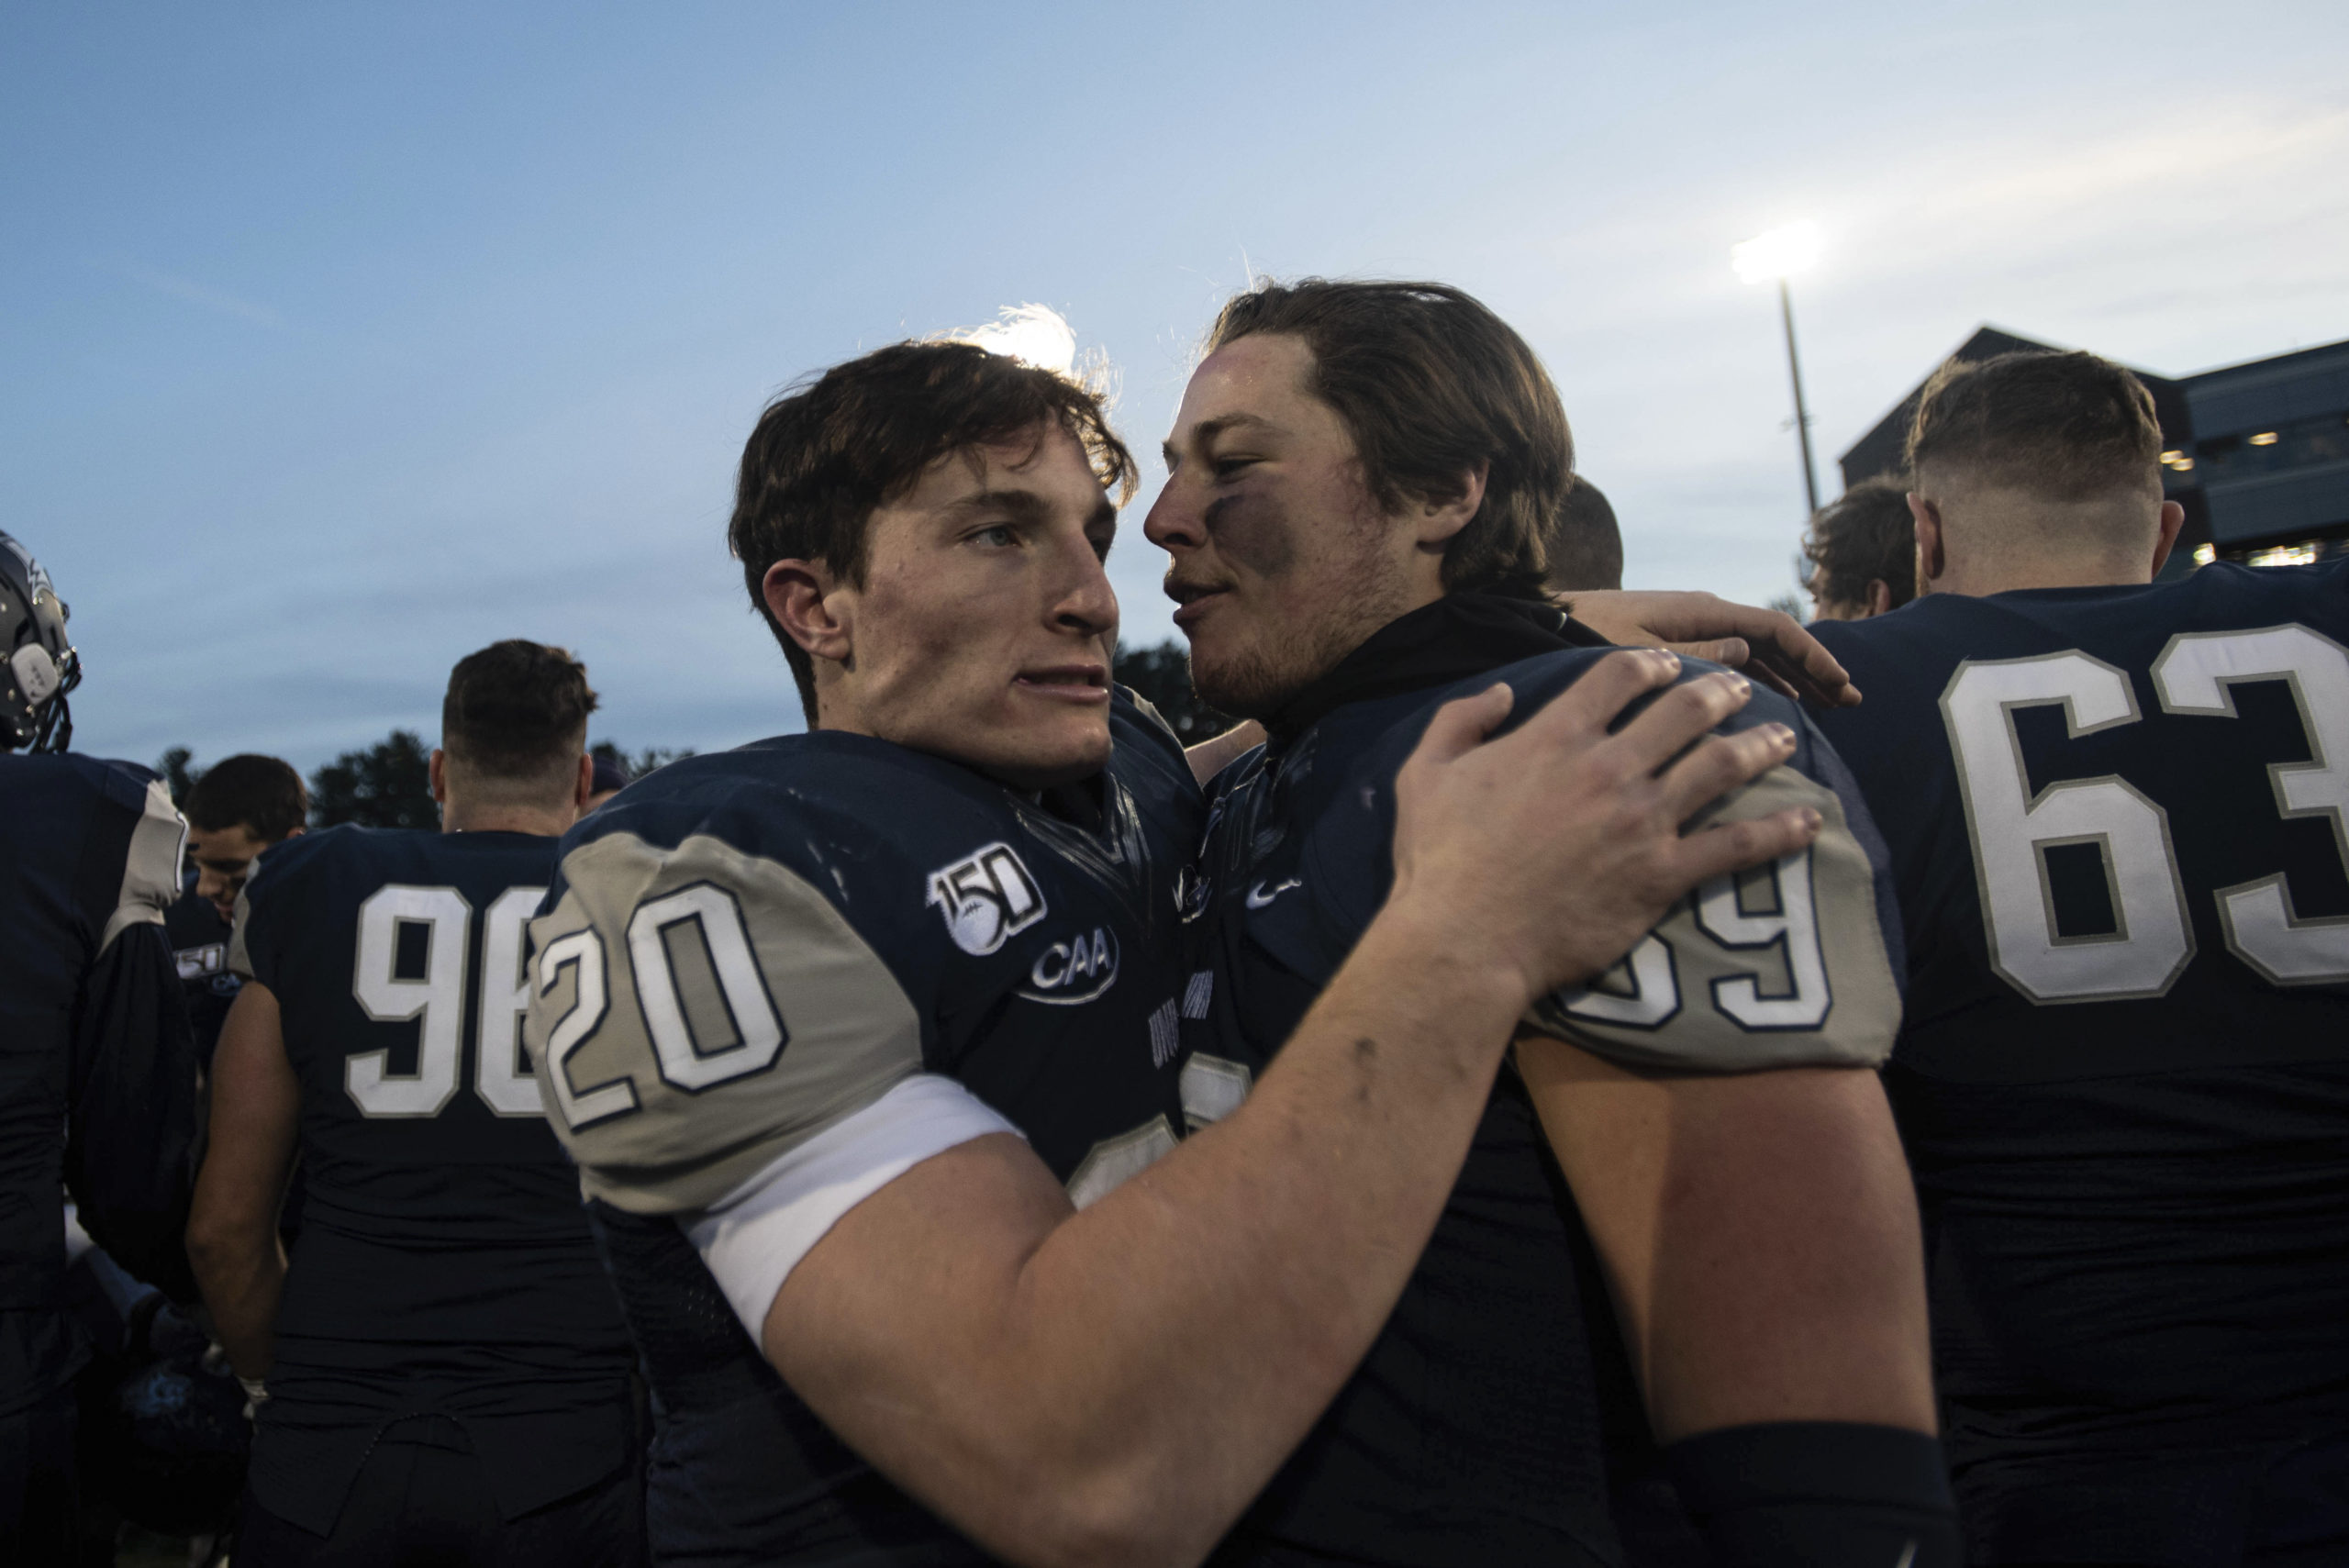 Westhampton Beach graduate Dylan Laube is in his junior season at the University of New Hampshire, trying to adjust to a new normal in the time of Covid-19. He and his UNH teammates are hoping they can play an abbreviated football season in the spring, and were allowed to practice this fall.